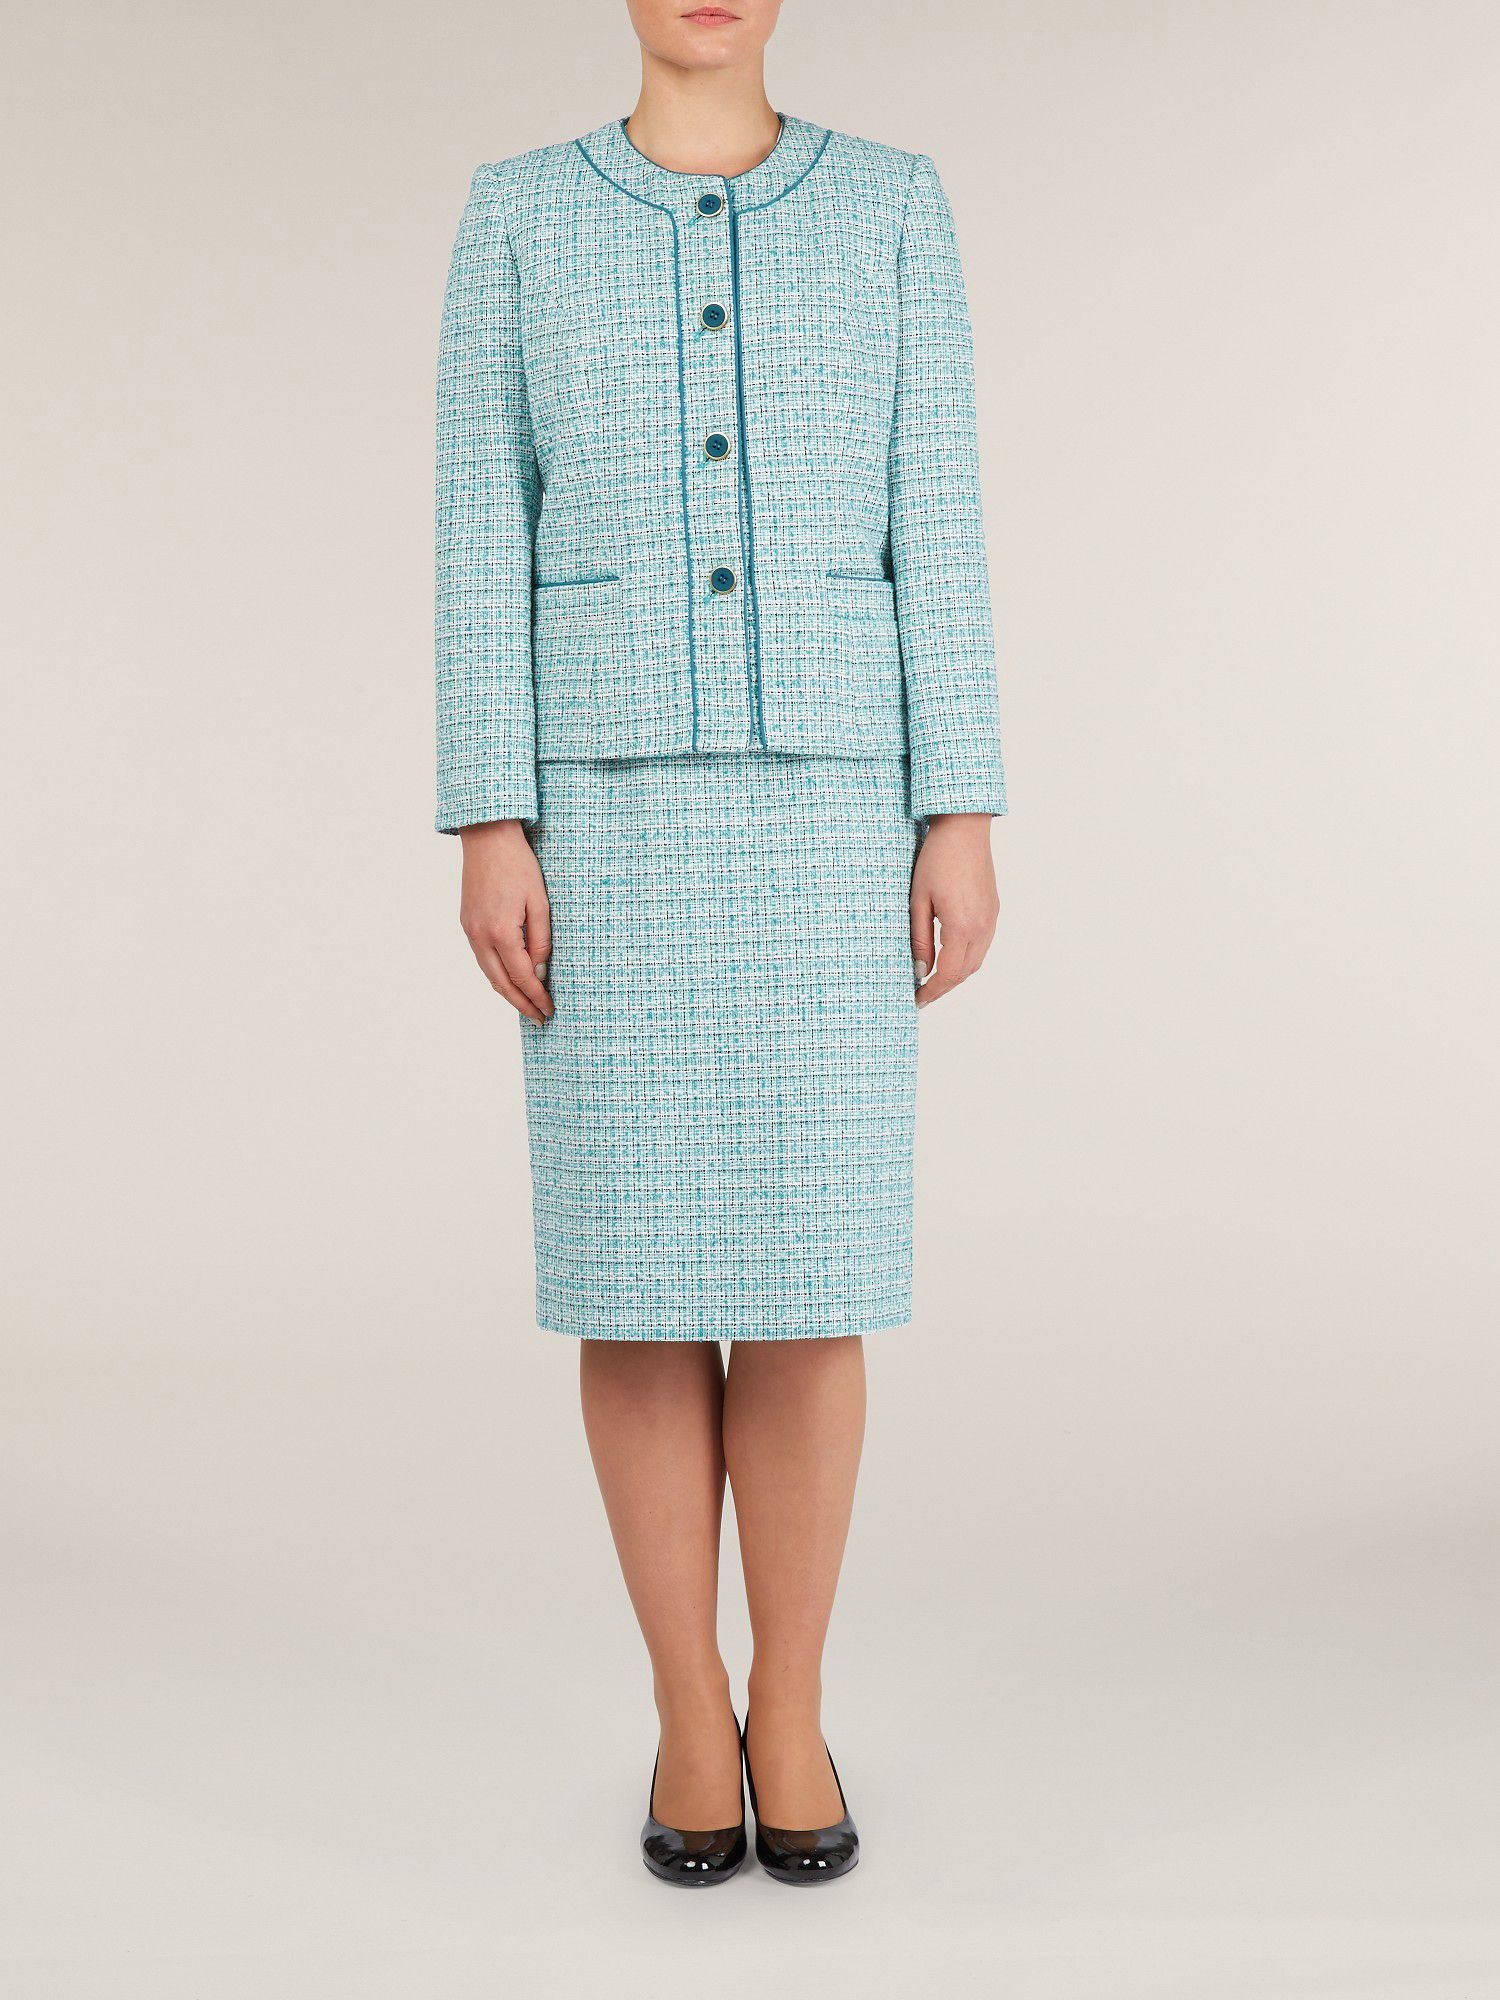 Turquoise Tweed Skirt